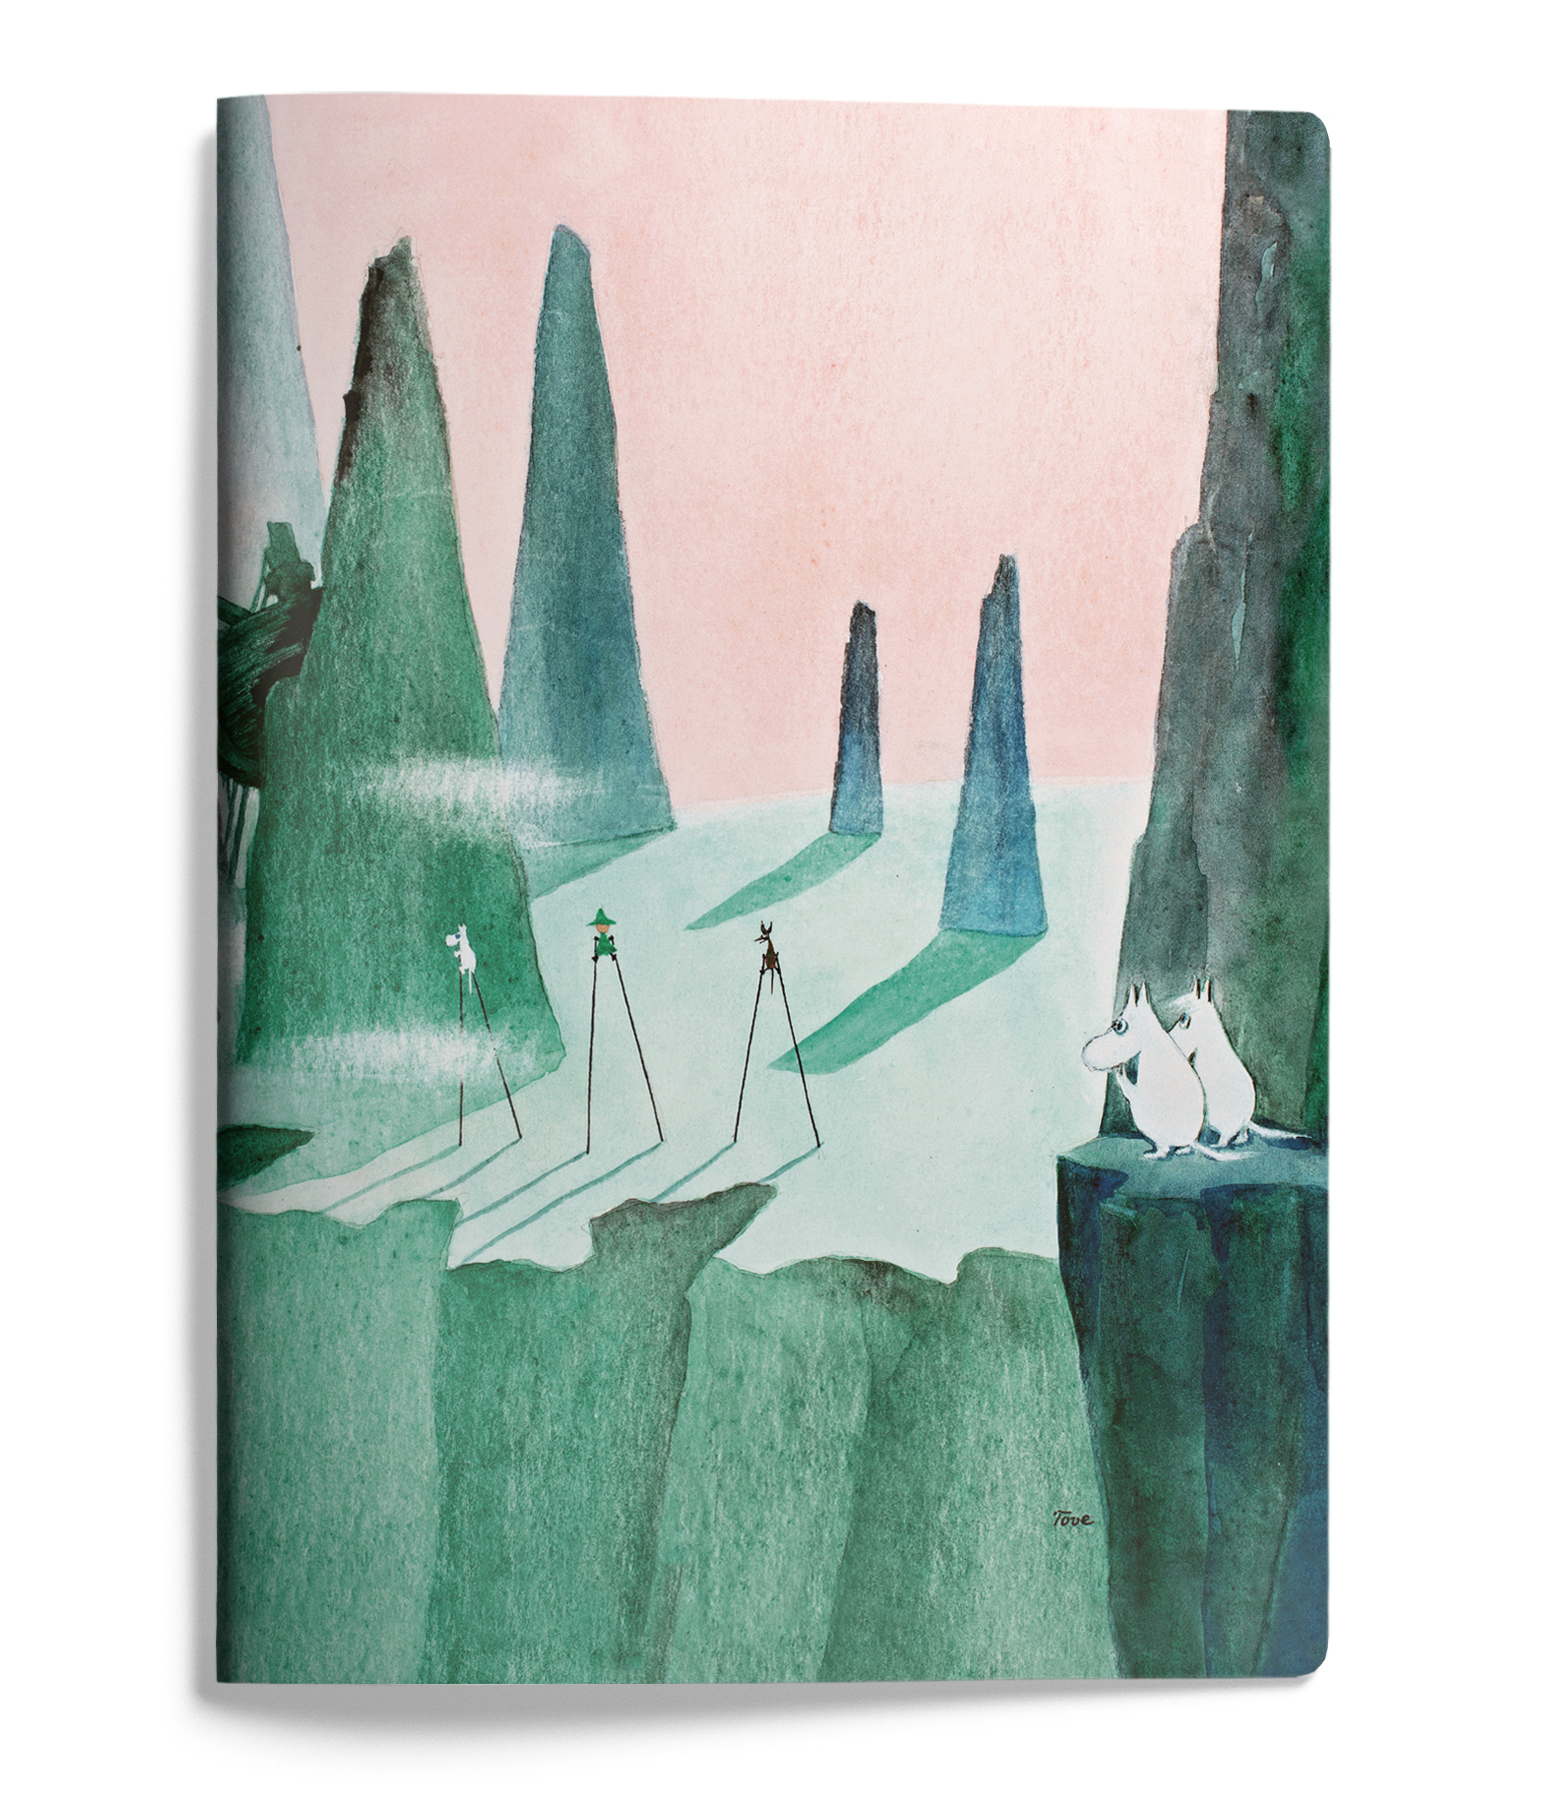 Putinki Softcover Notebook A5 Comet in Moominland